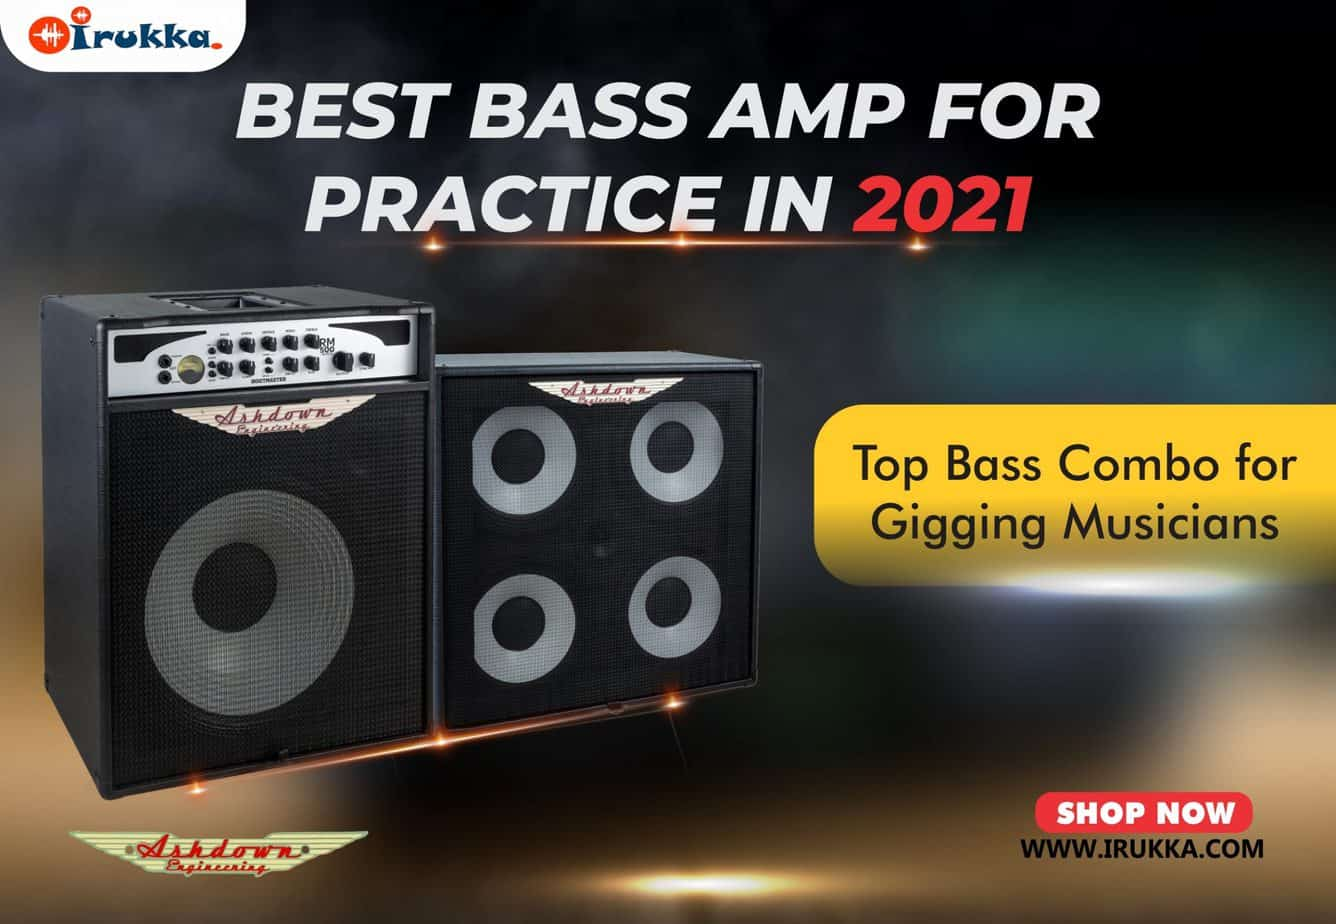 Best Bass Amp For Practice in 2021 Top Bass Combo for Gigging Musicians